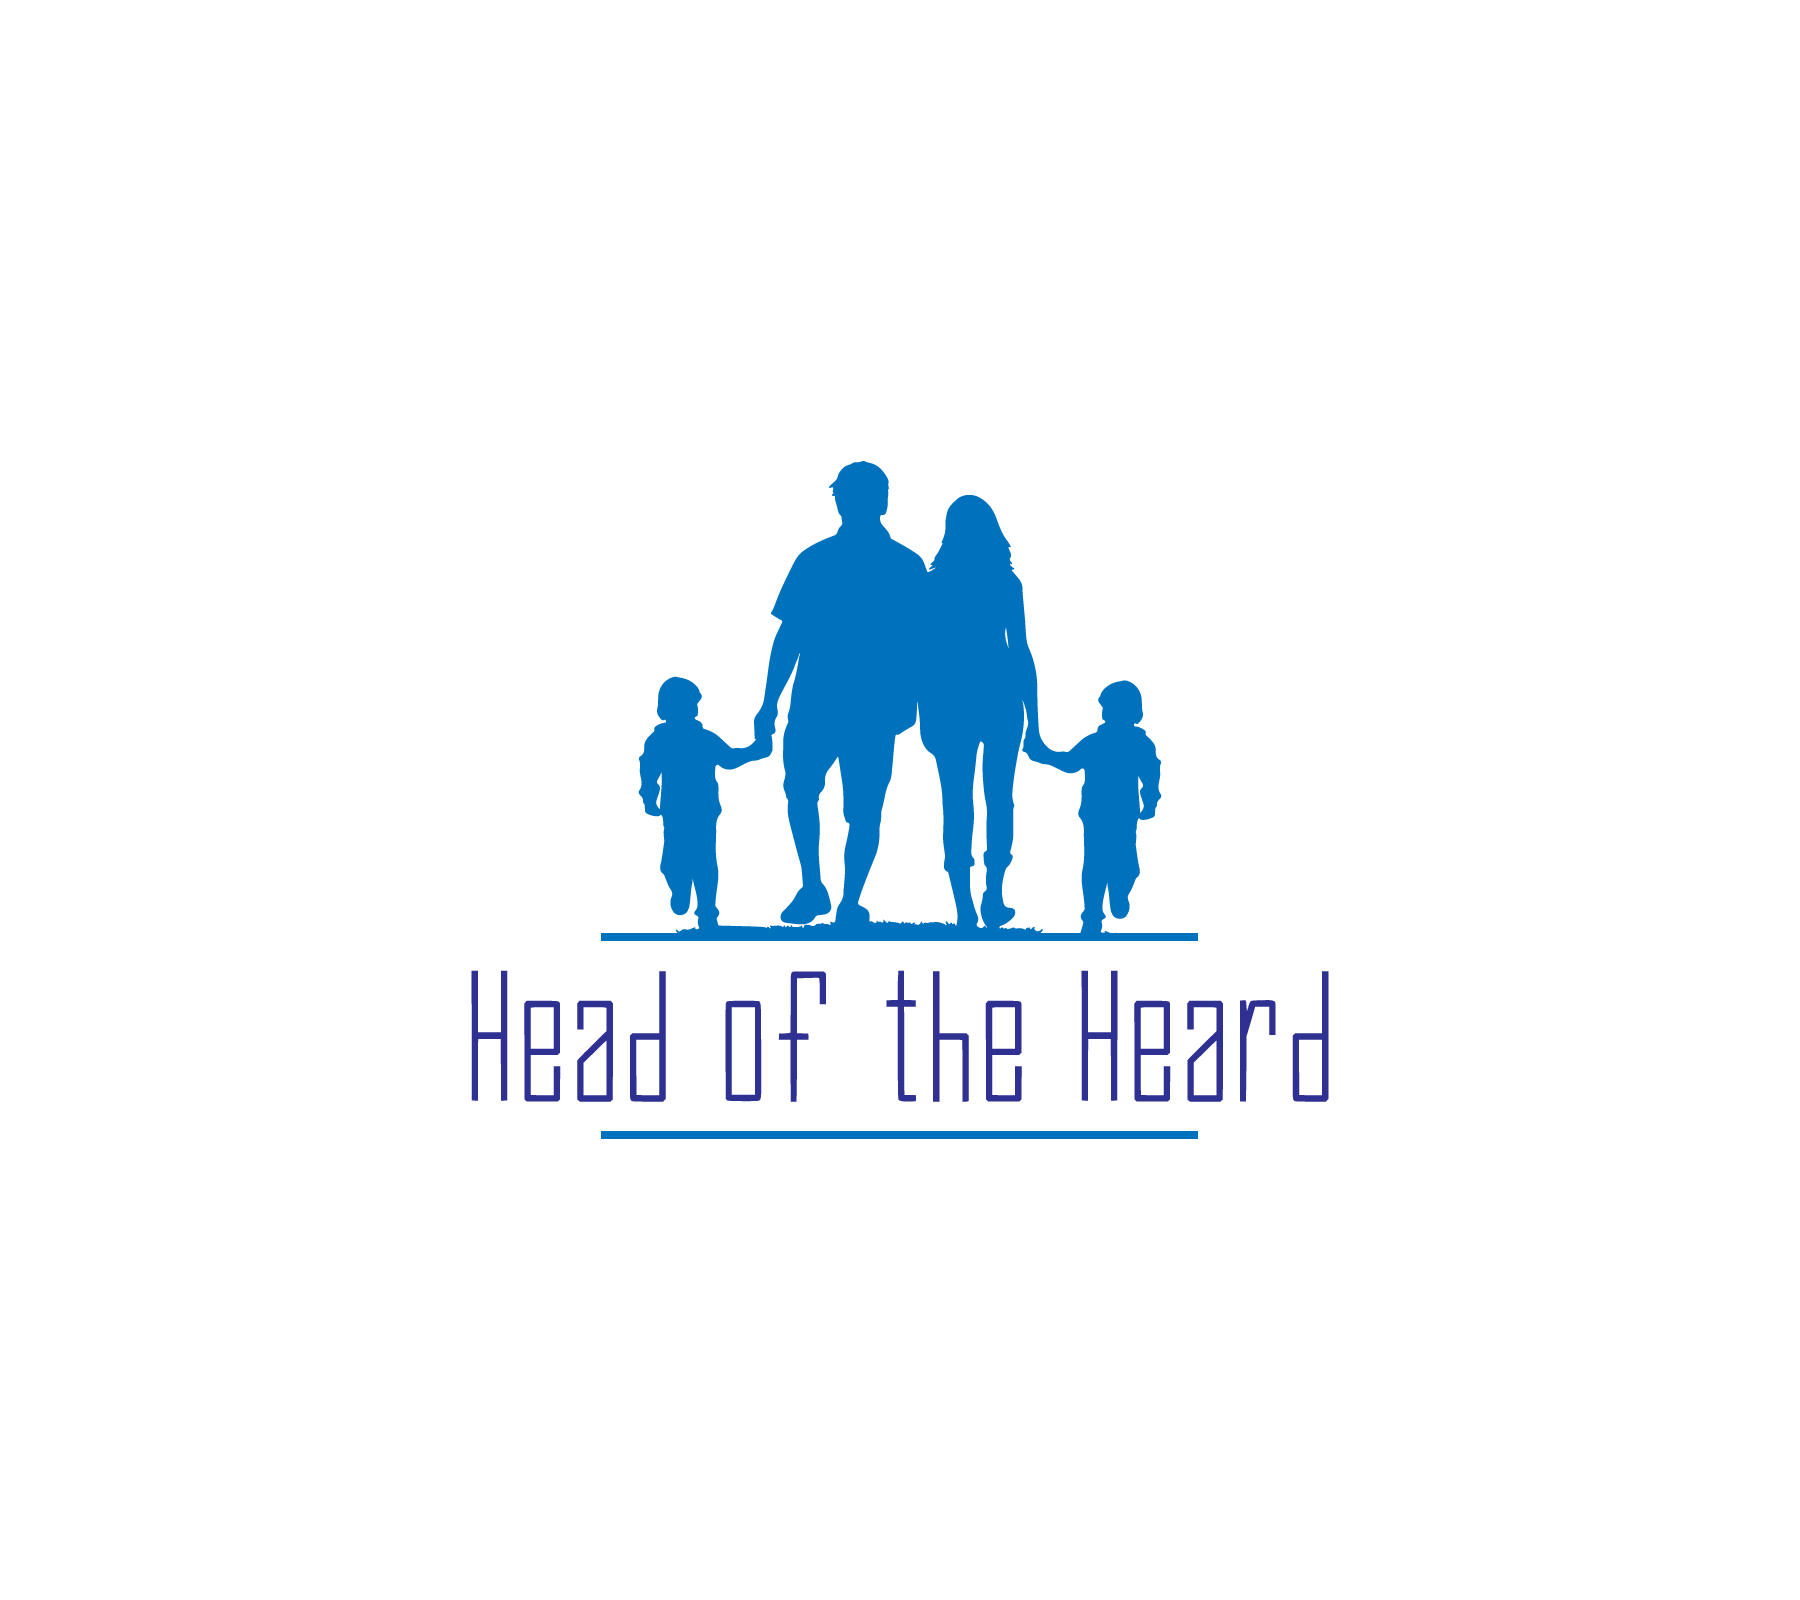 The Head of the Heard